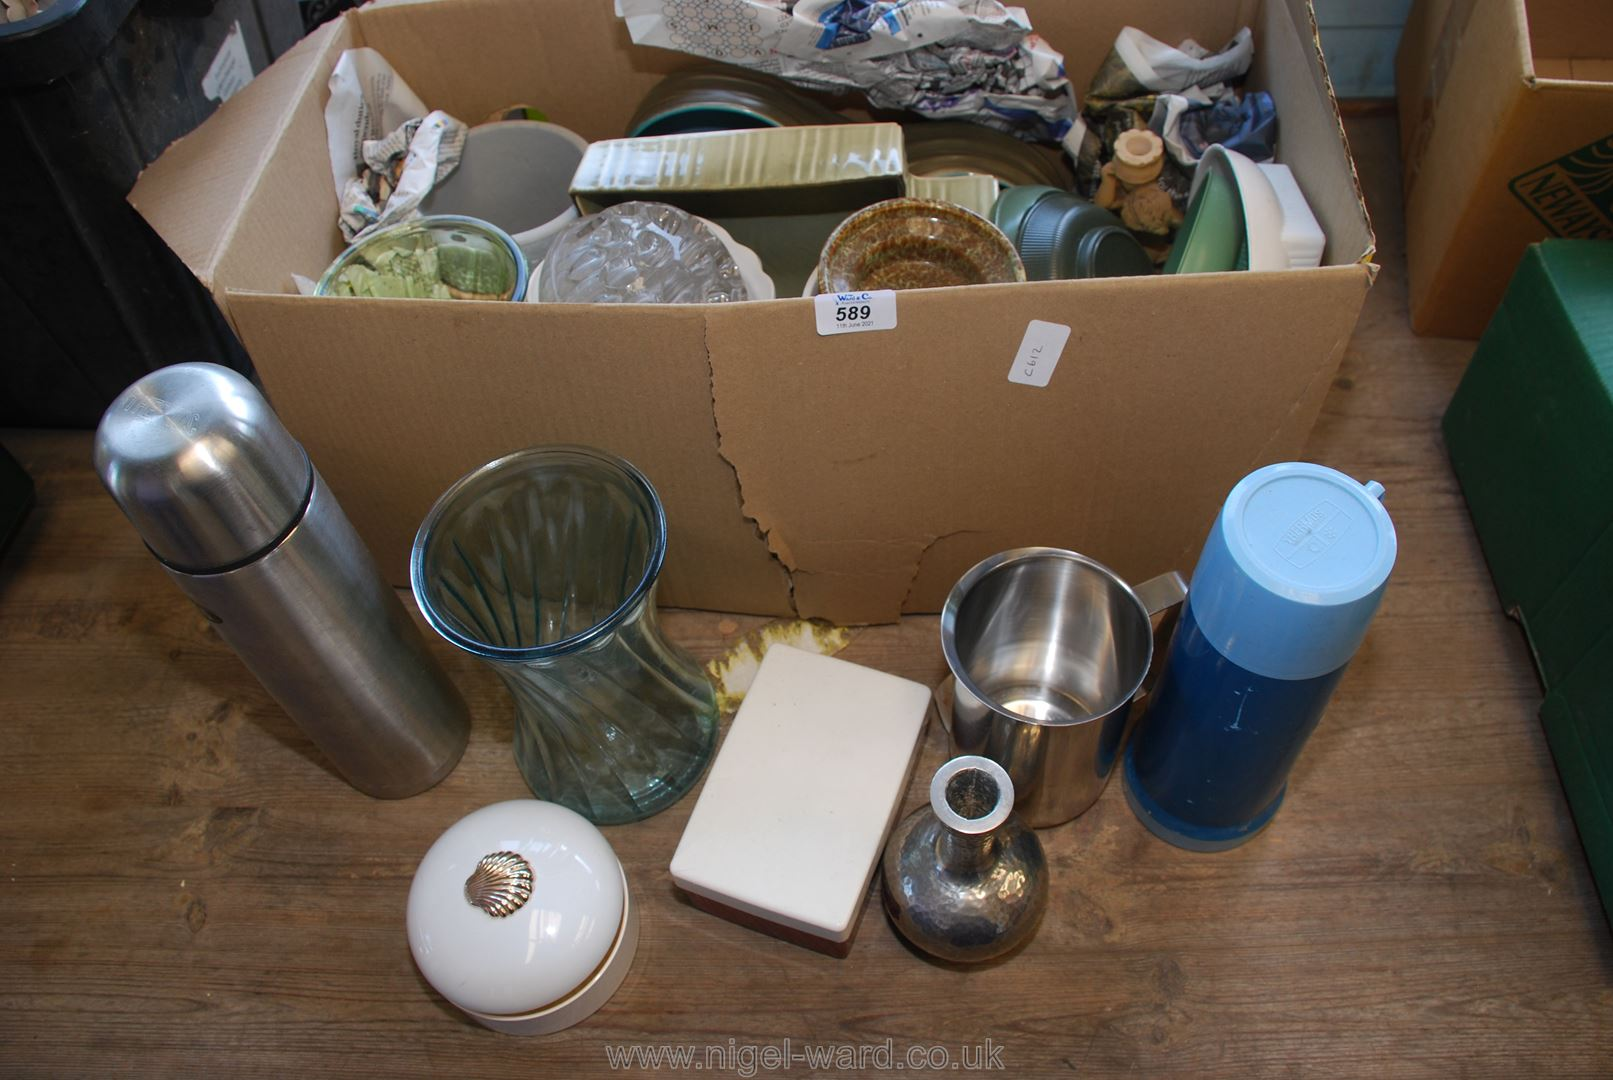 A box of flasks, vases and miscellaneous china.